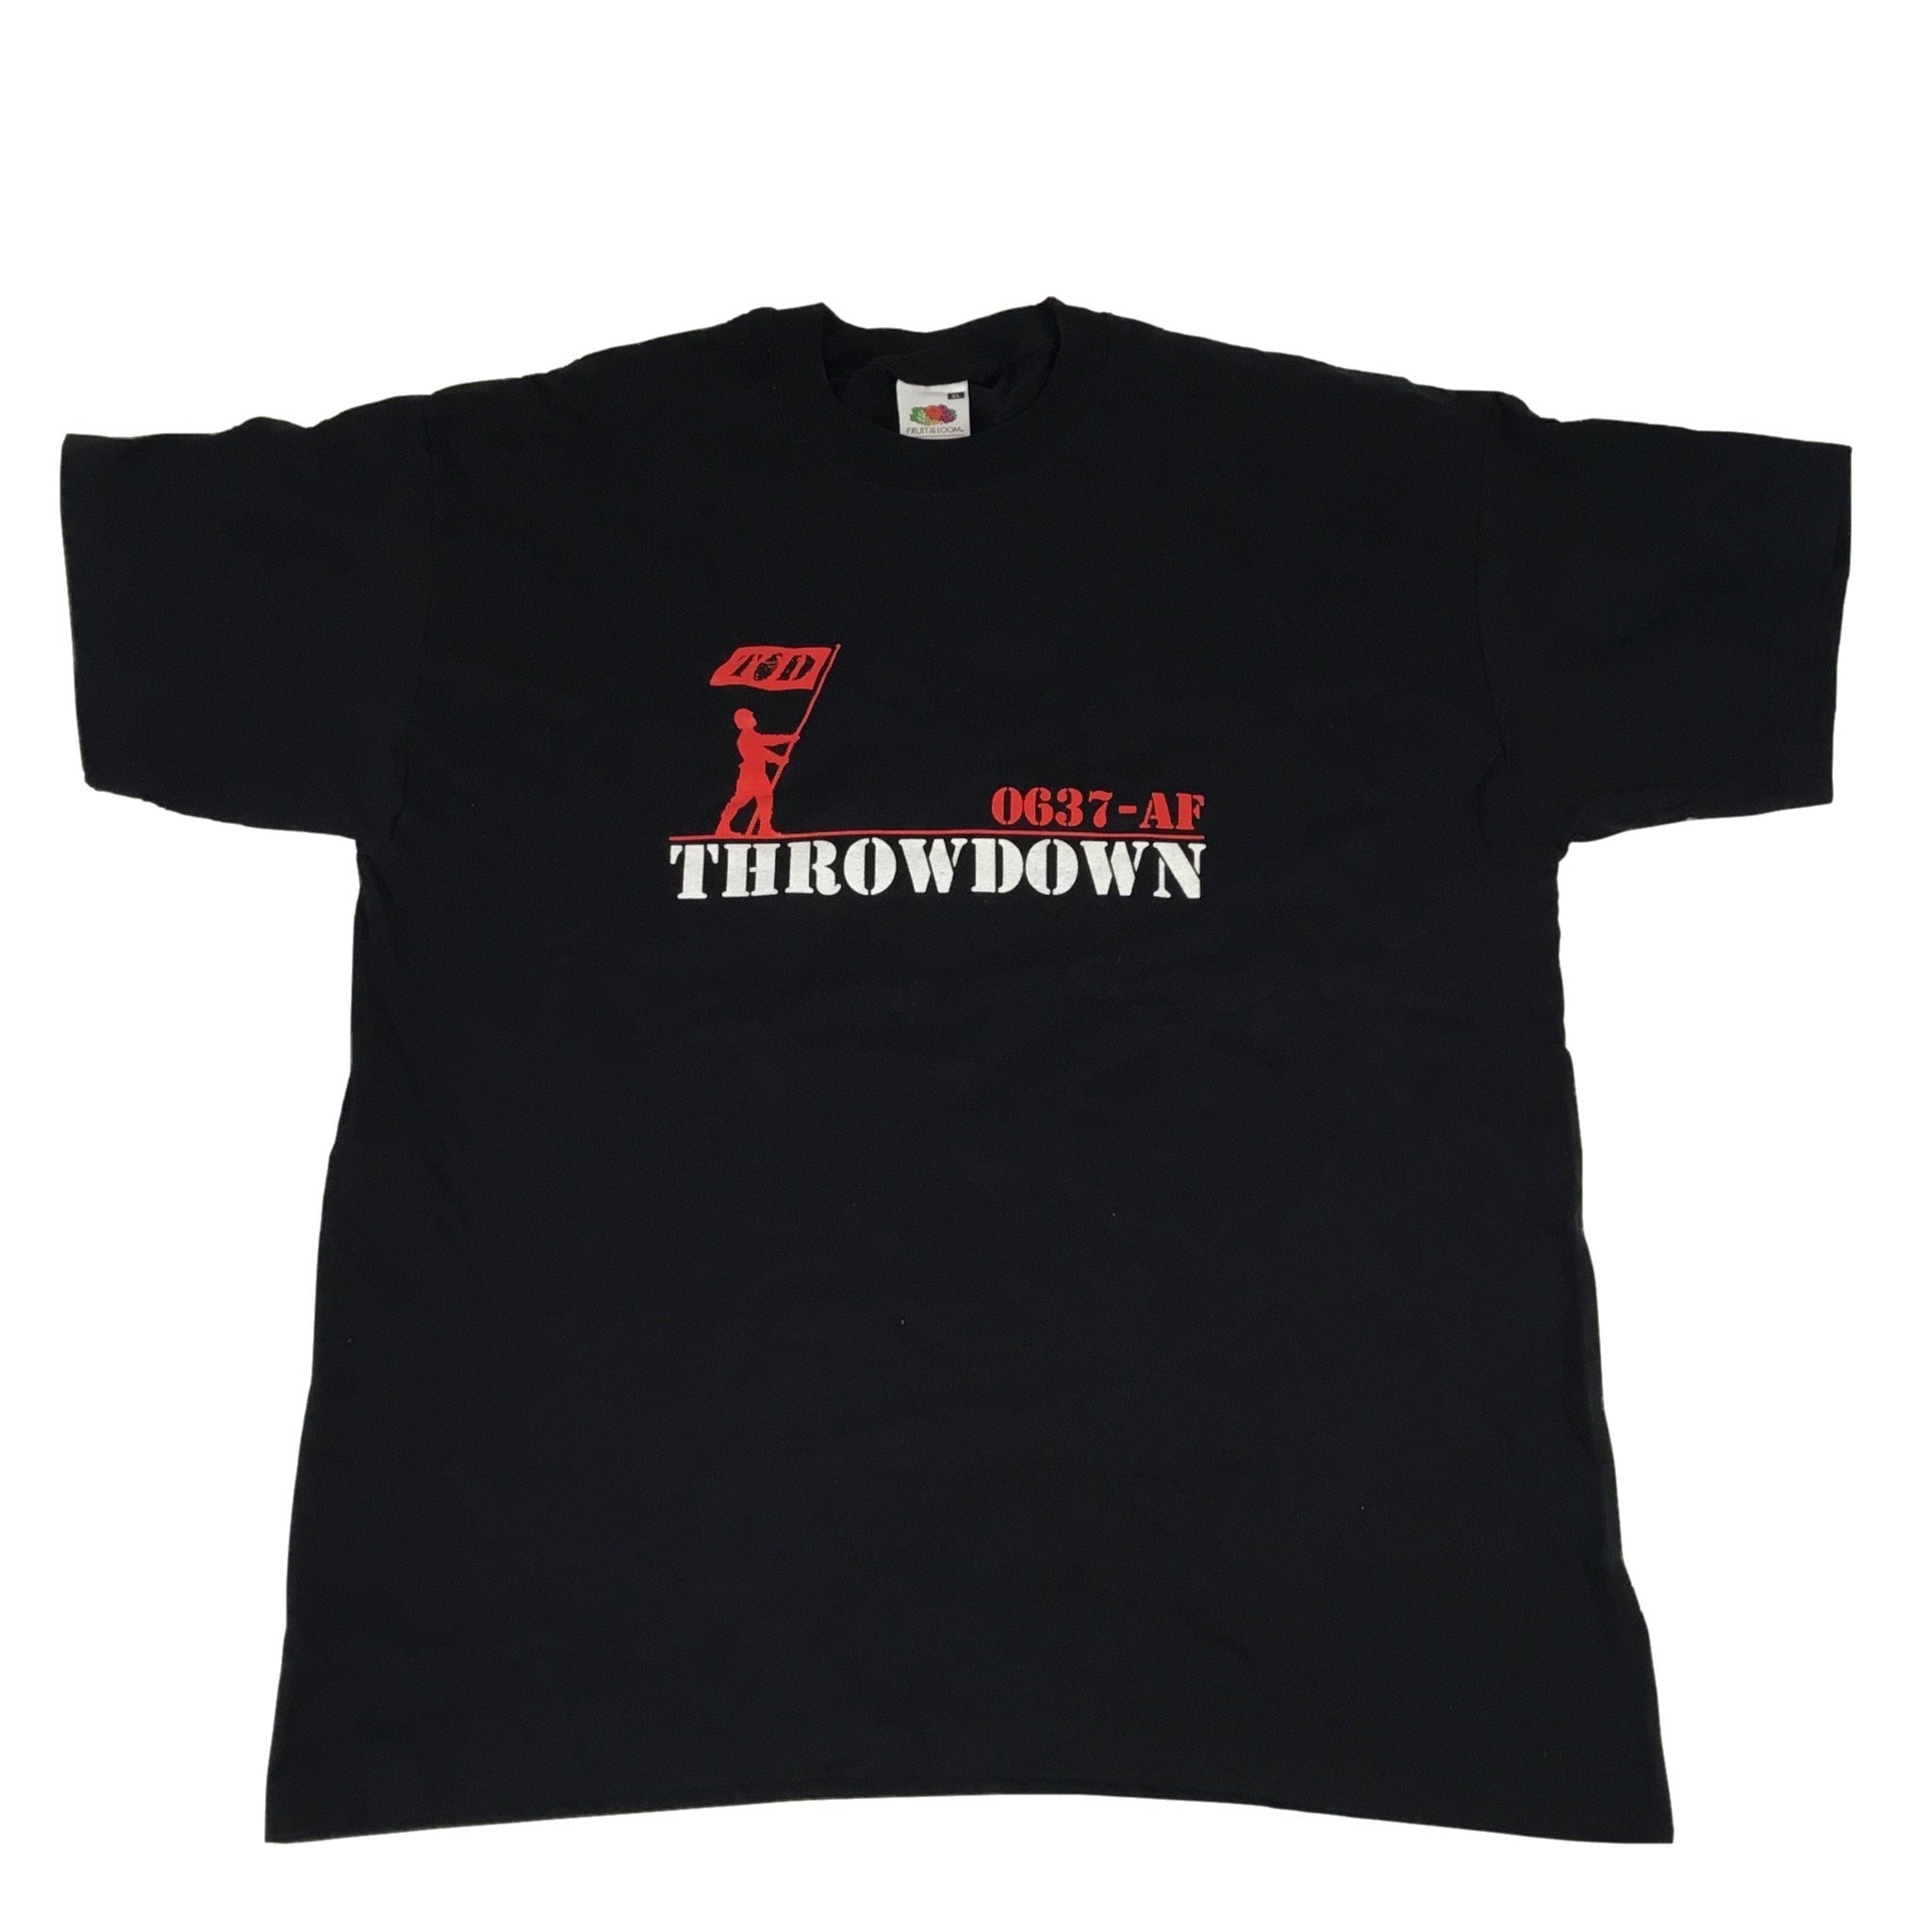 "Vintage Throwdown ""0637-AF"" T-Shirt"